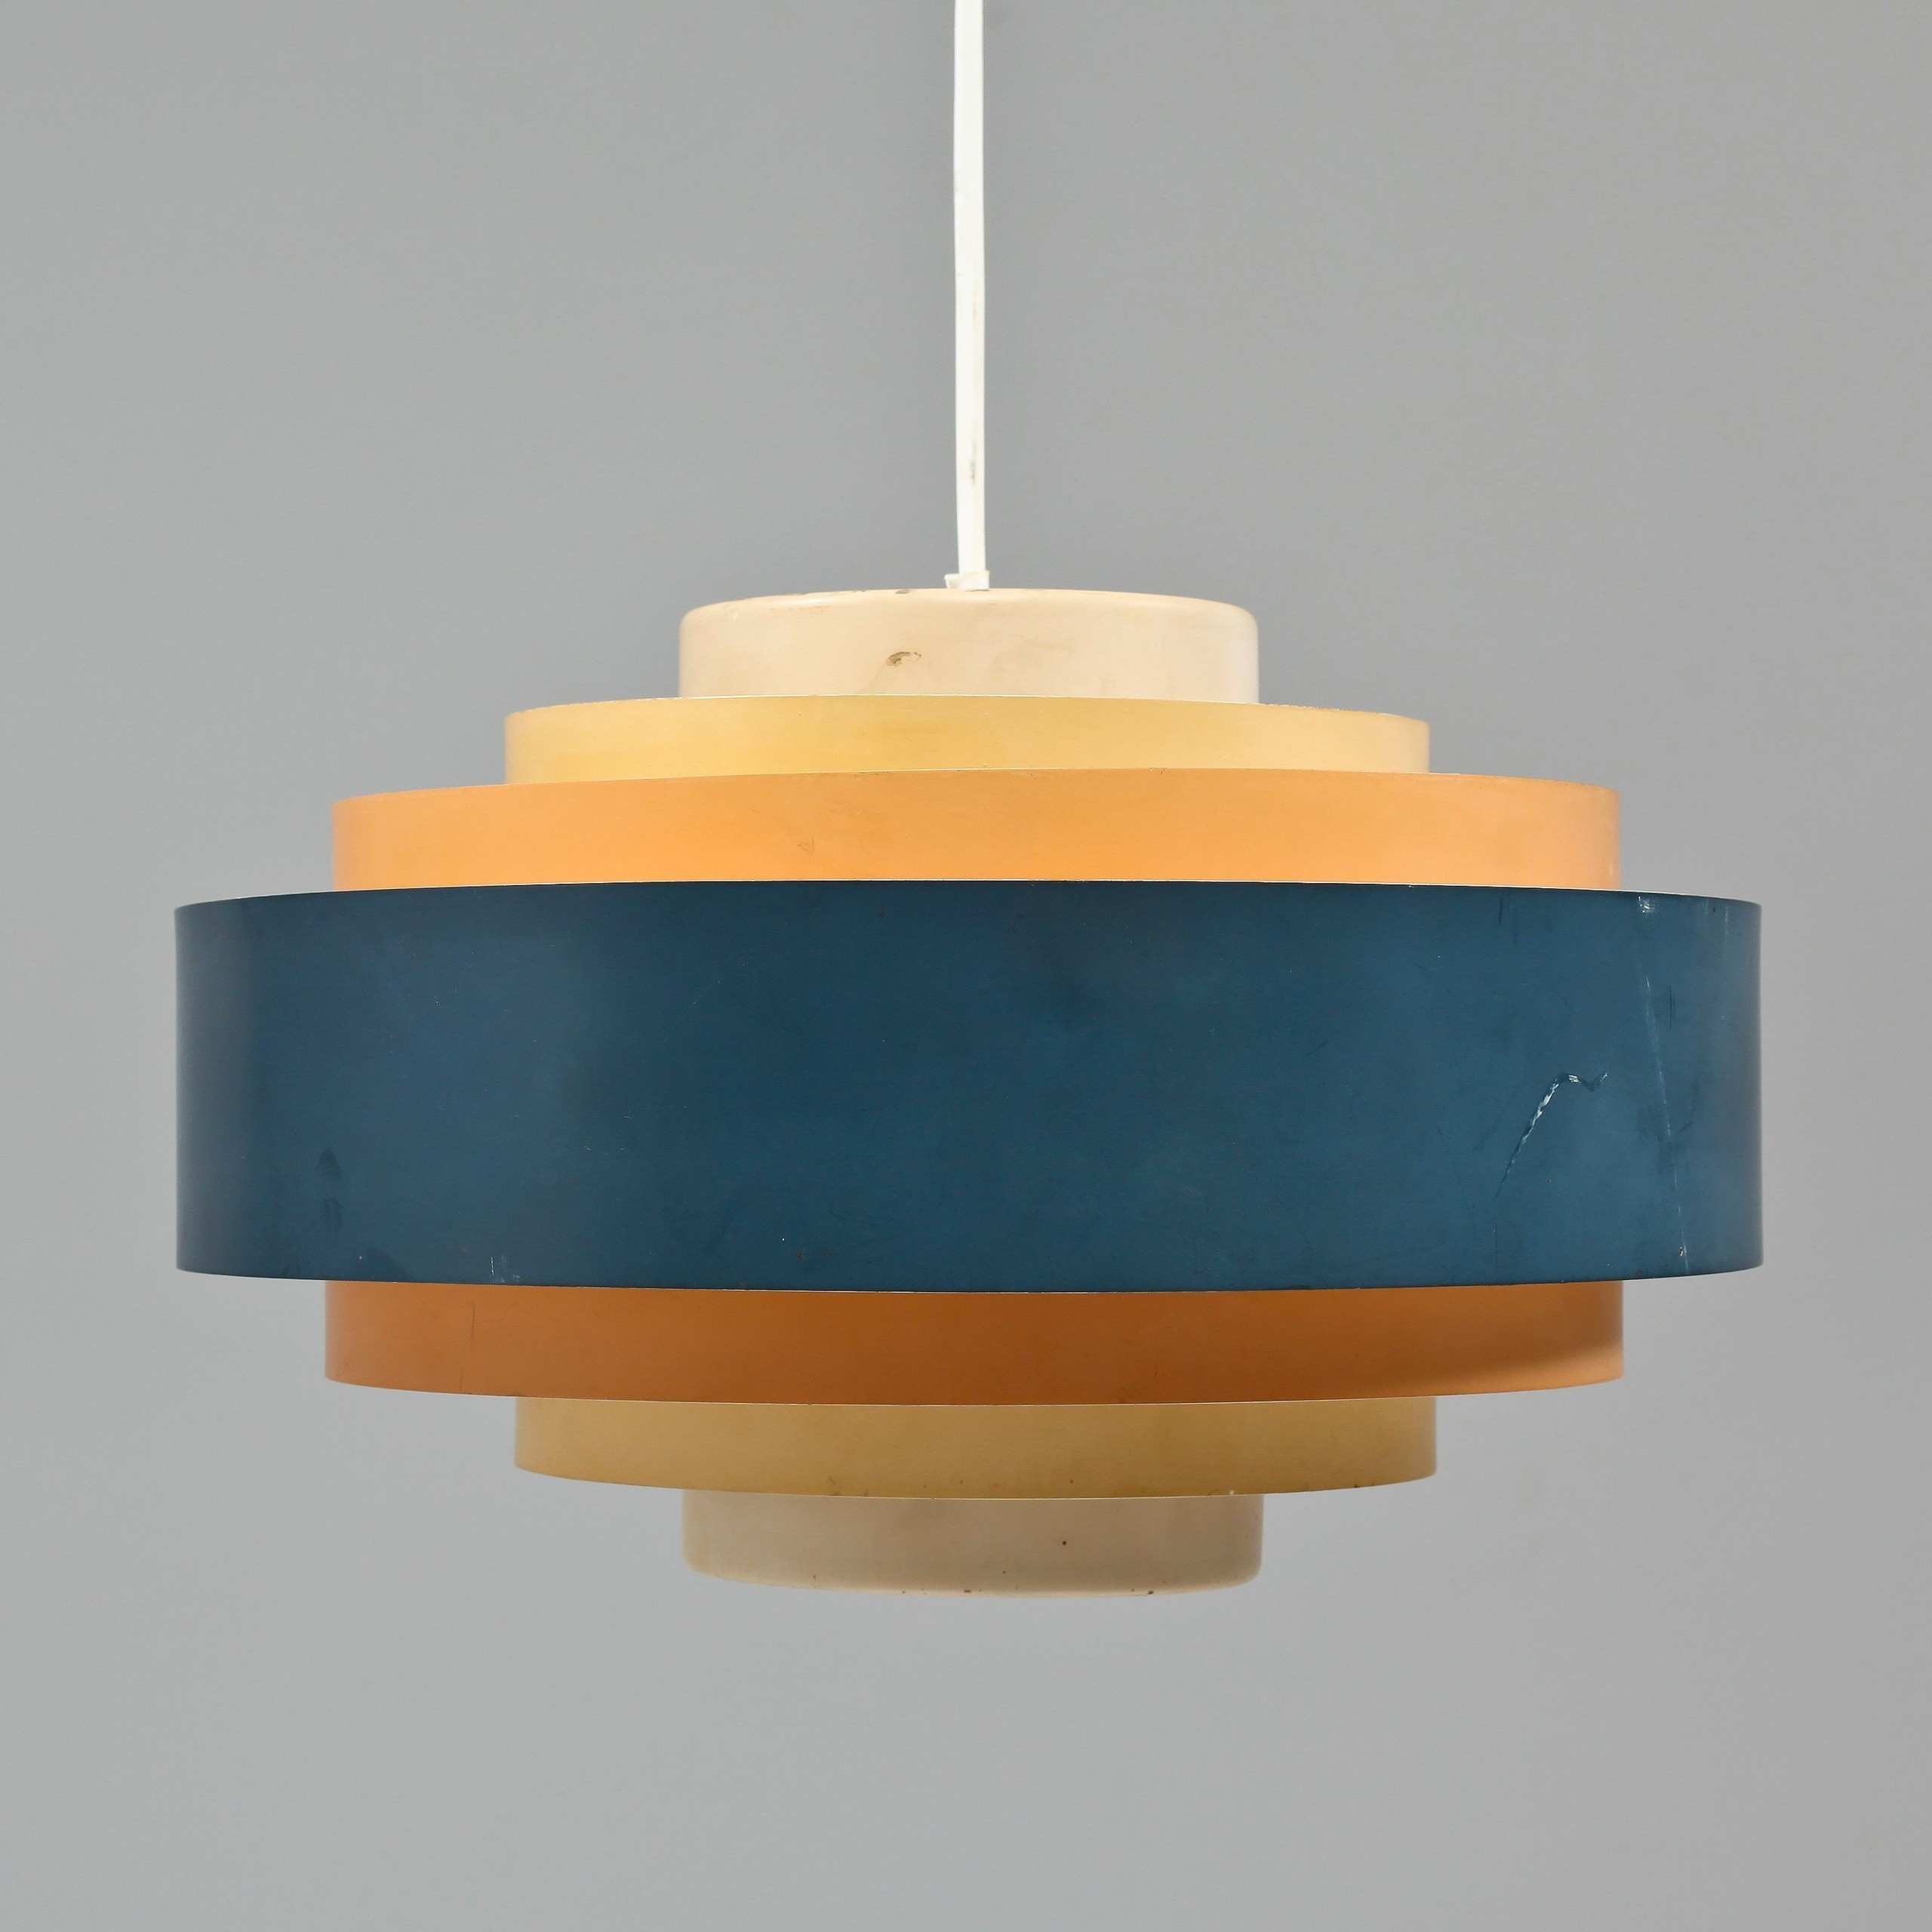 Image of: Paper Pendant Lamp Ideas On Foter